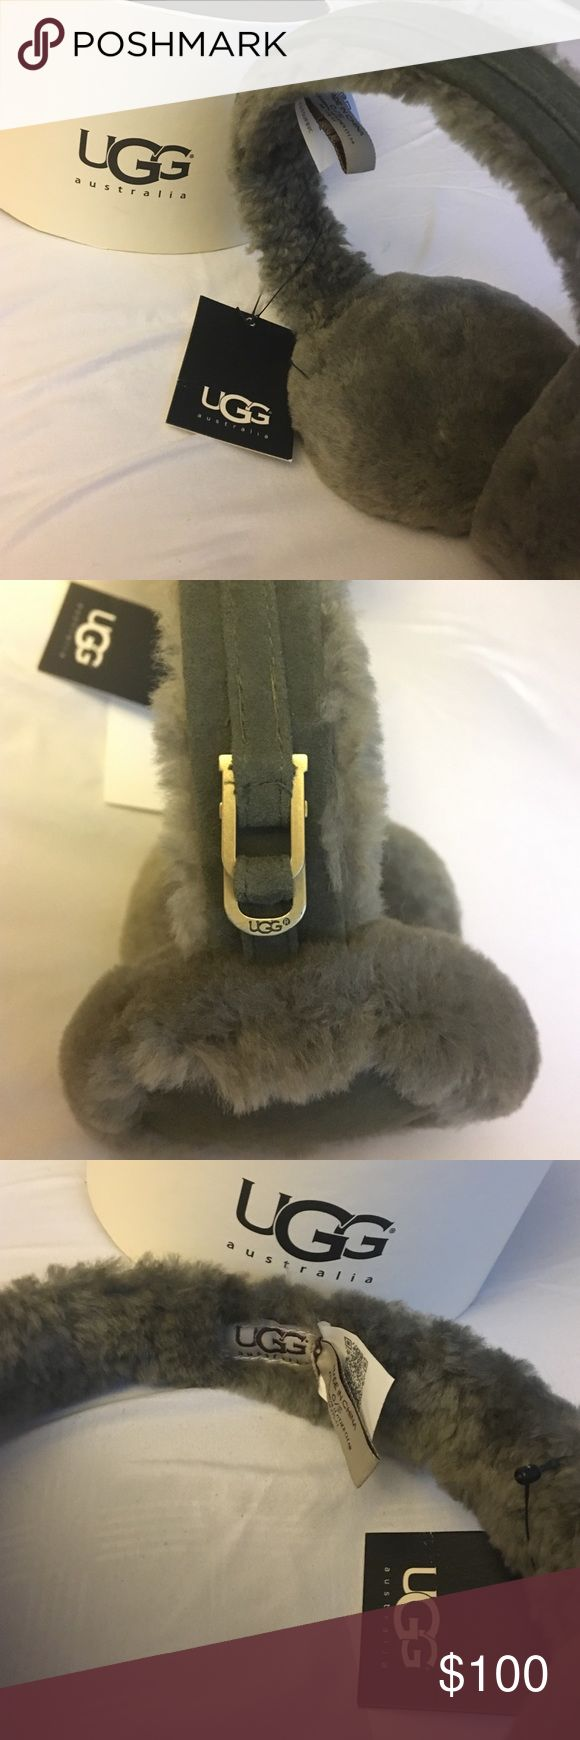 Grey UGG Australia Earmuffs Add warm and comfortable UGG earmuffs to your flawless winter outfit. Never worn or used. Item comes with tags. UGG Other